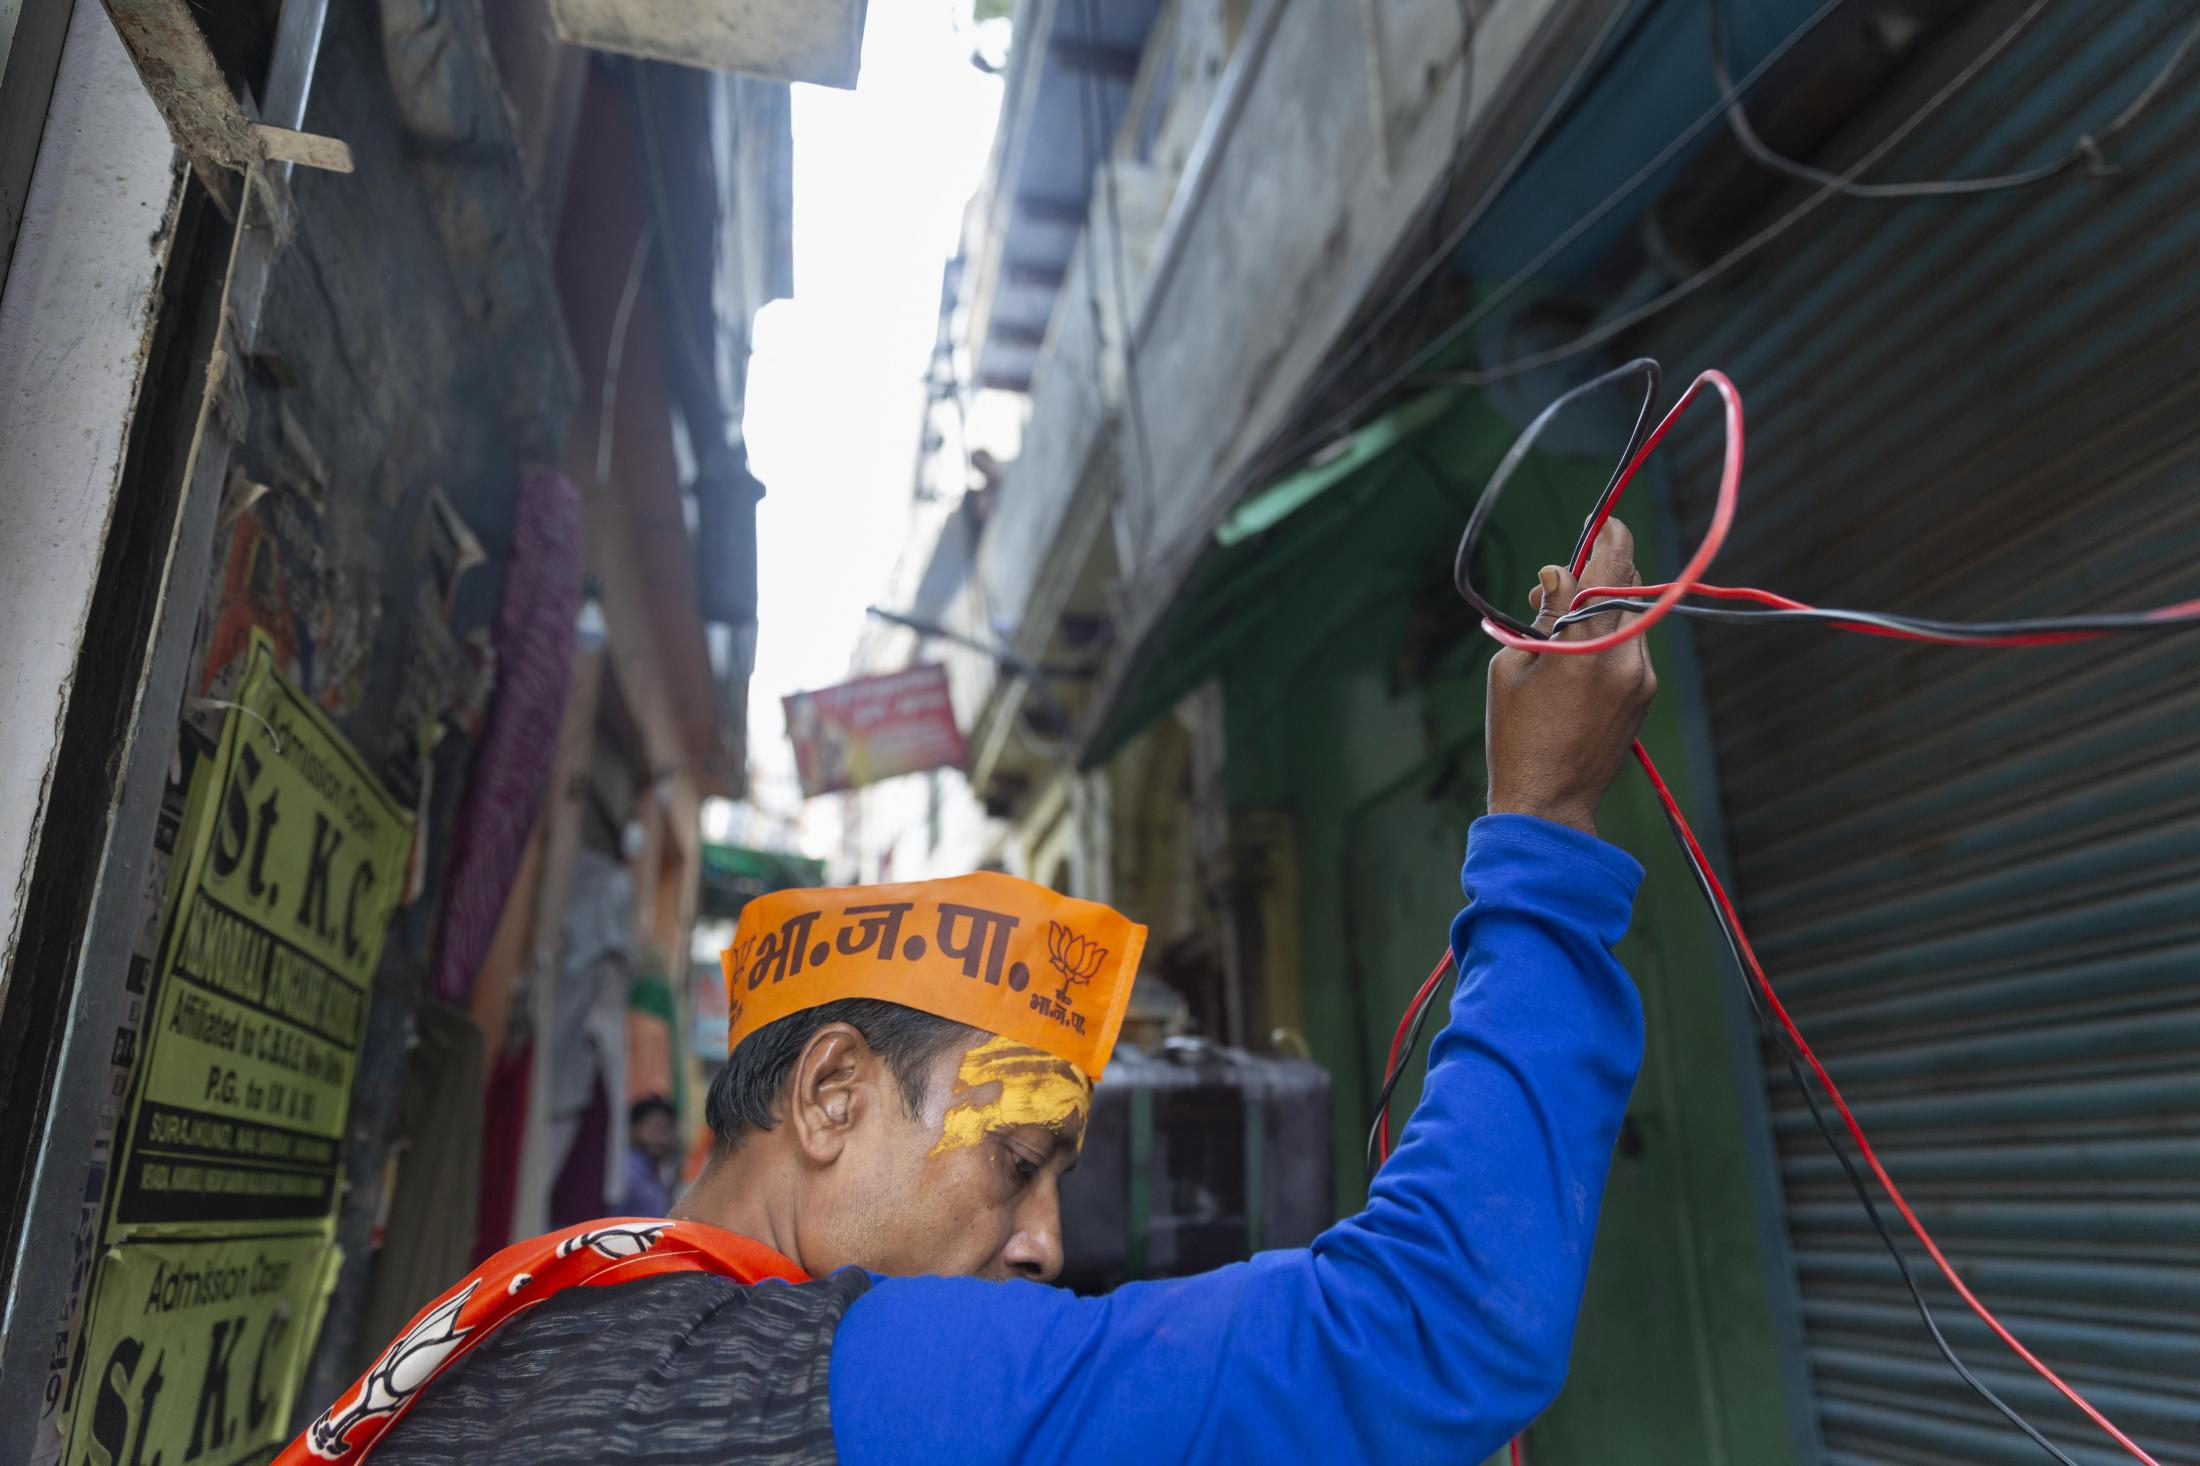 A BJP supporter sets up the music system before the Lok Sabha election results were disclosed.